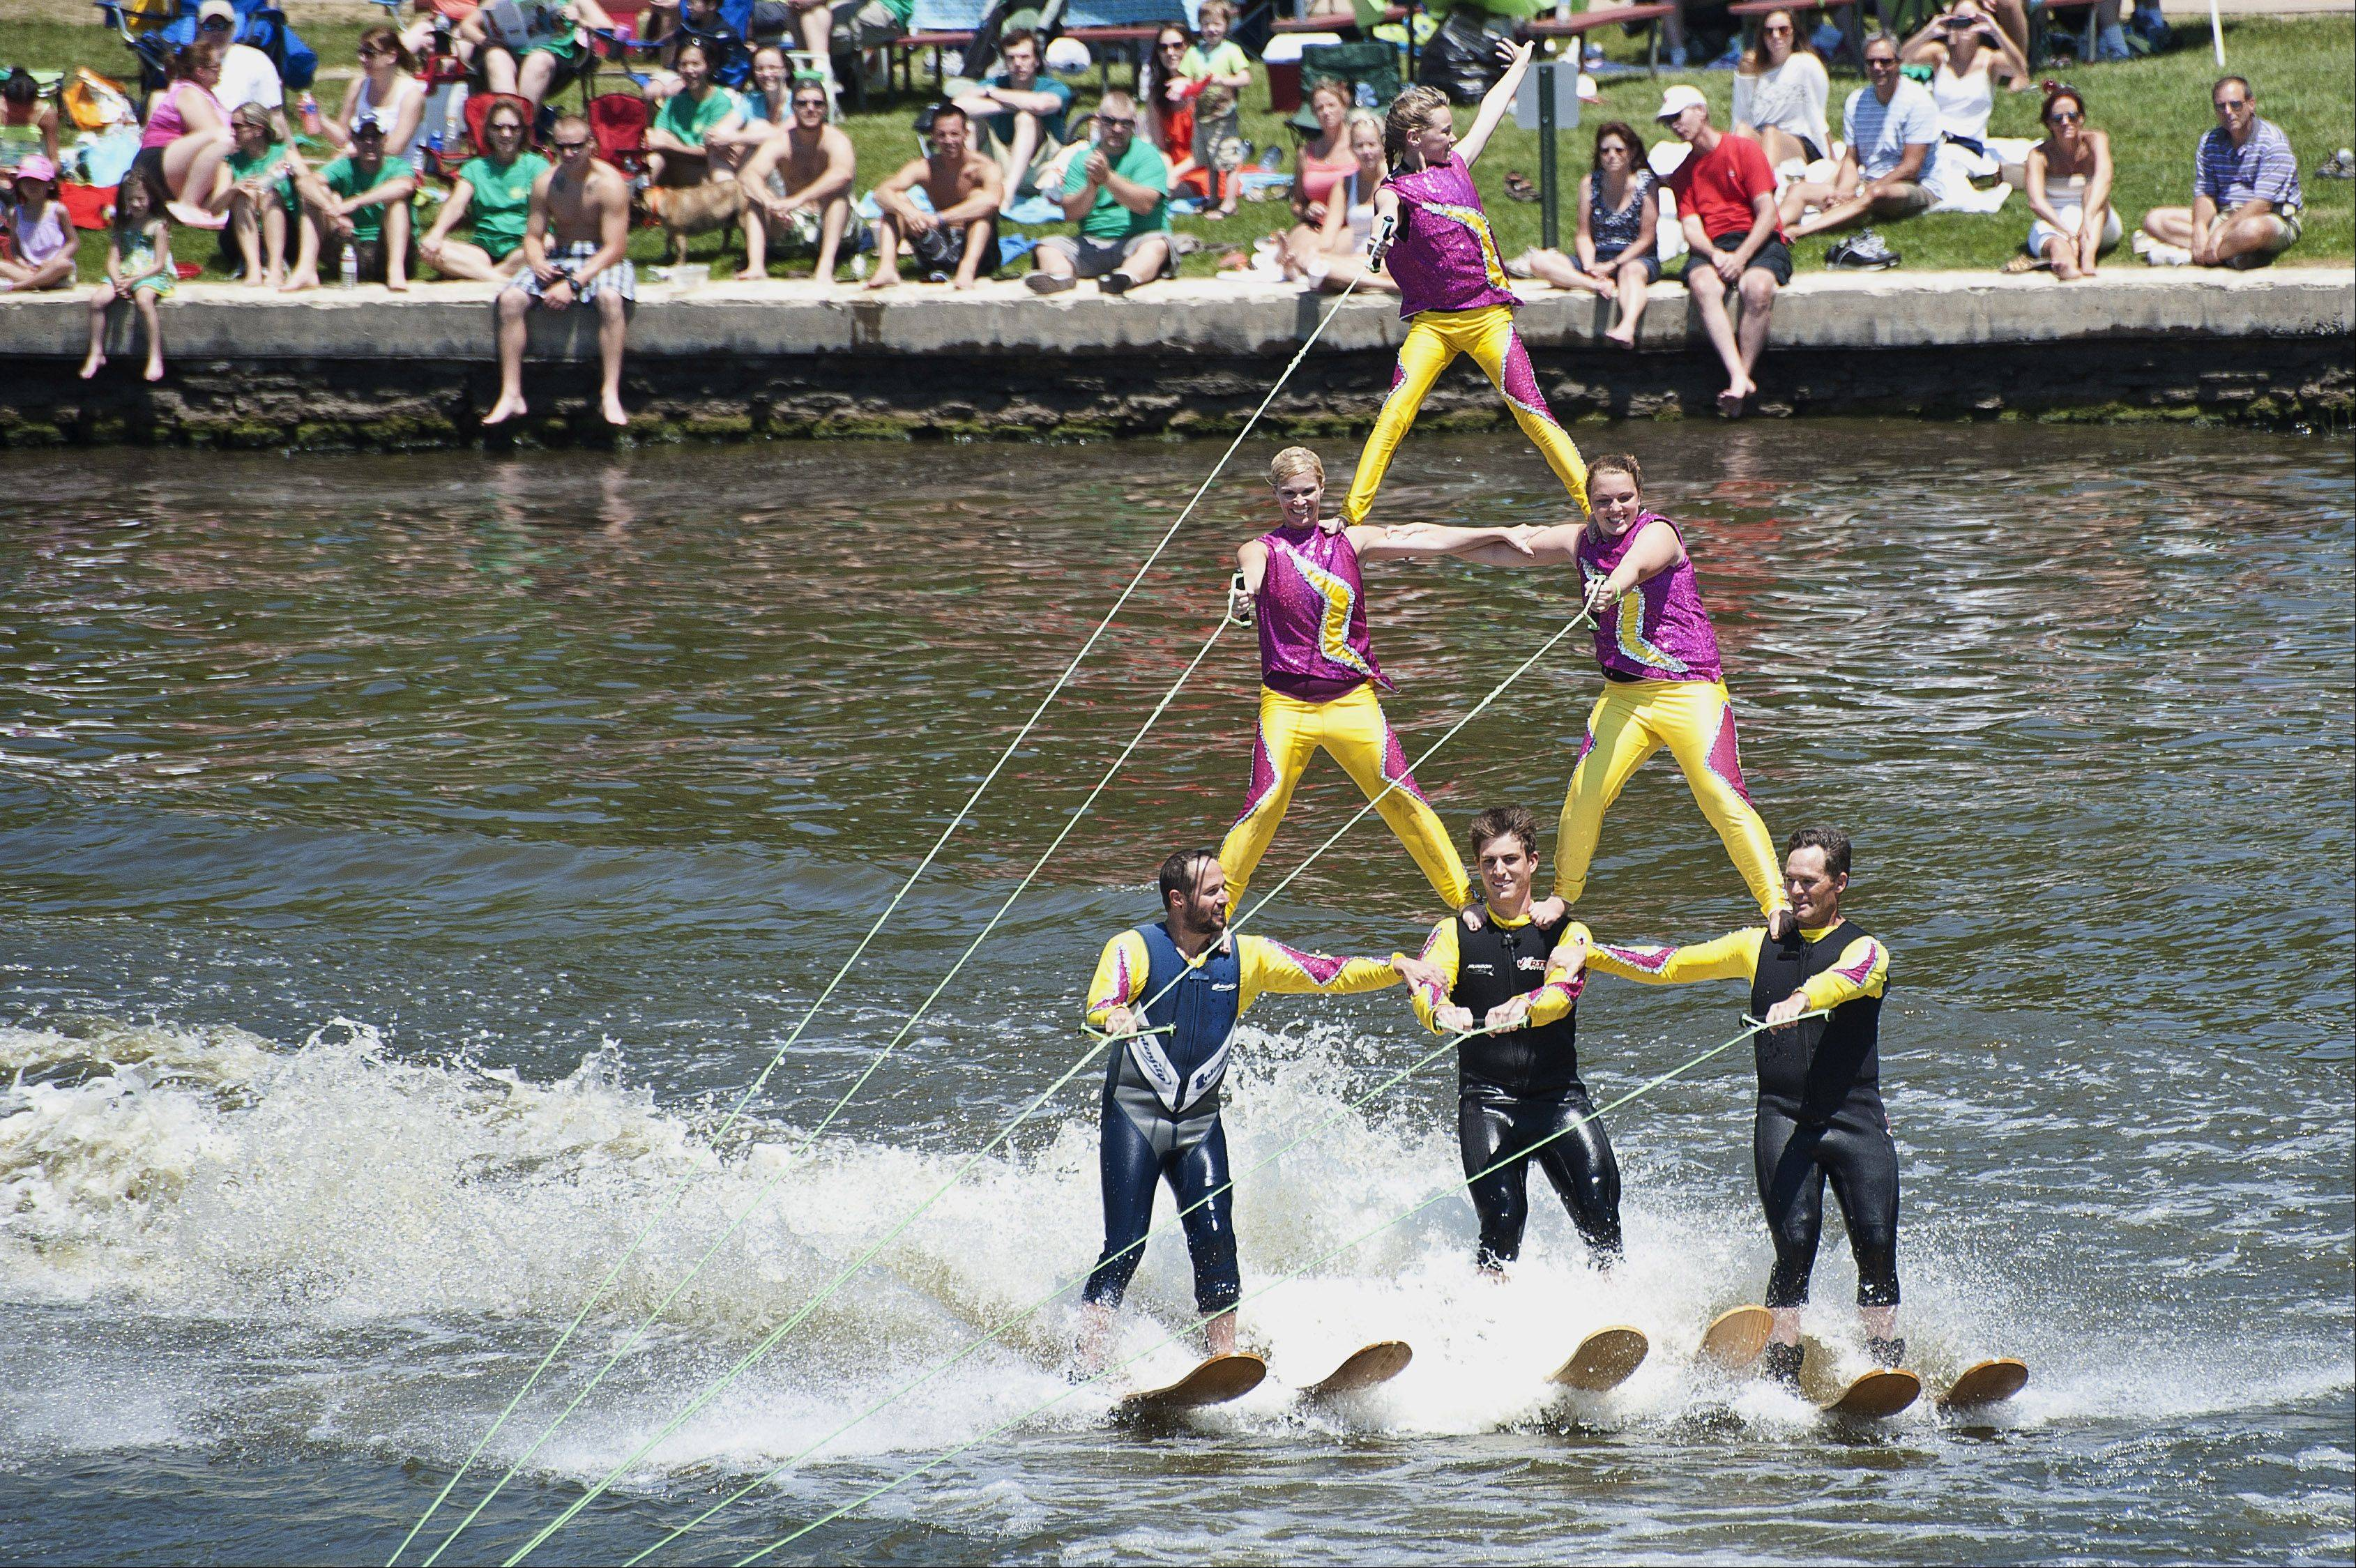 Members of the Wonder Lake Ski Team entertain spectators at the Pride of the Fox's 30th annual RiverFest held in downtown St. Charles. The festival is the major recreational draw to the river in the city.